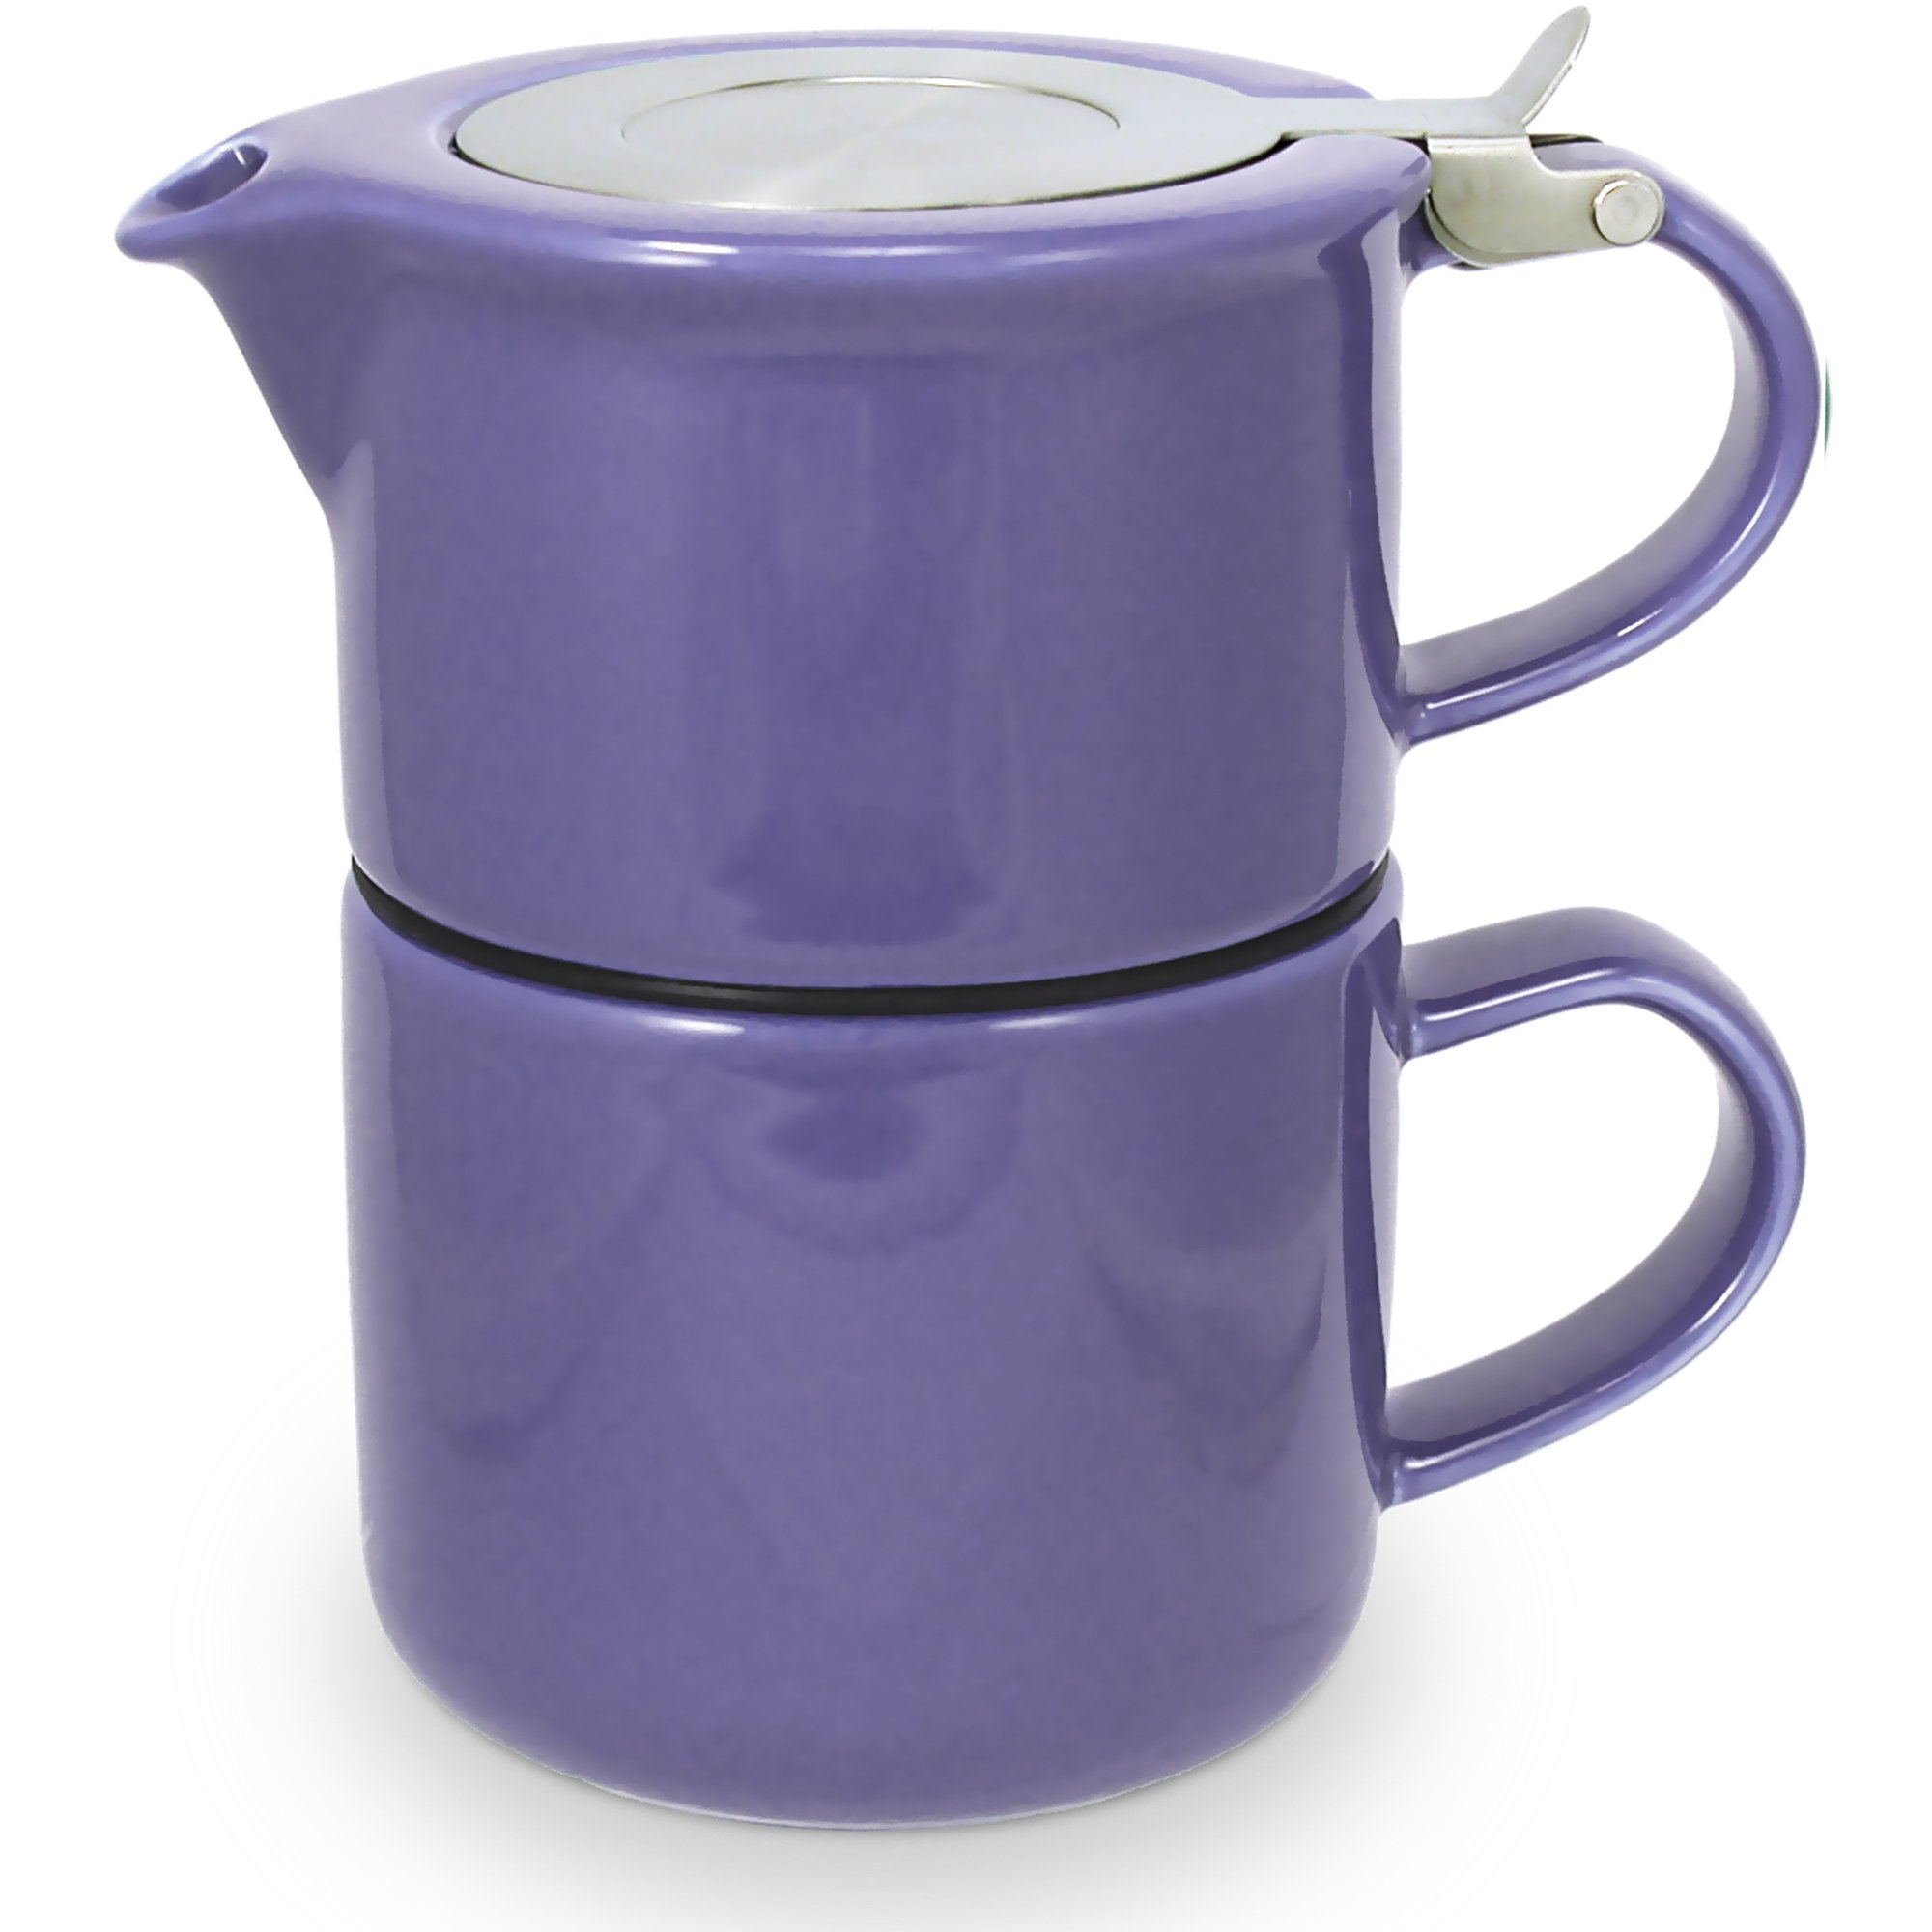 FORLIFE Tea for One Teapot with Infuser 14 oz, Purple